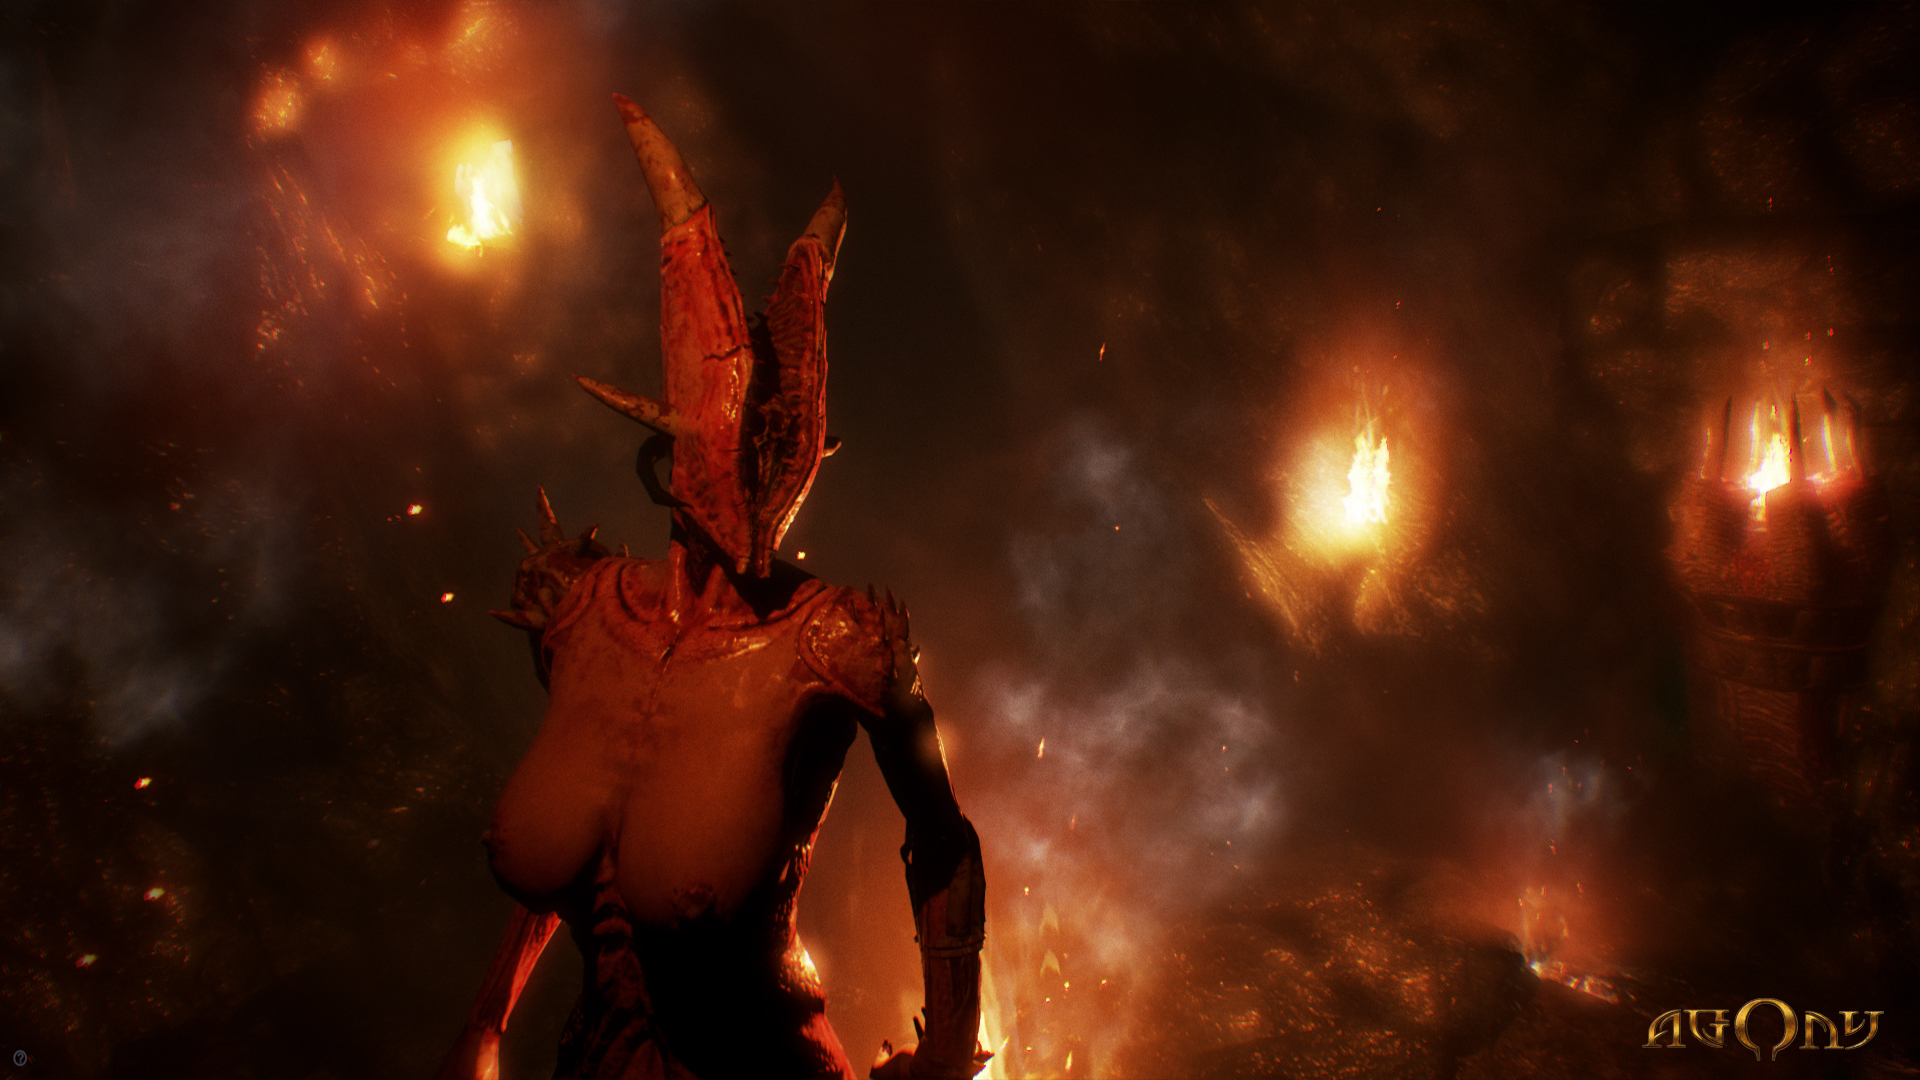 Agony uncensored patch for PC, true or not?